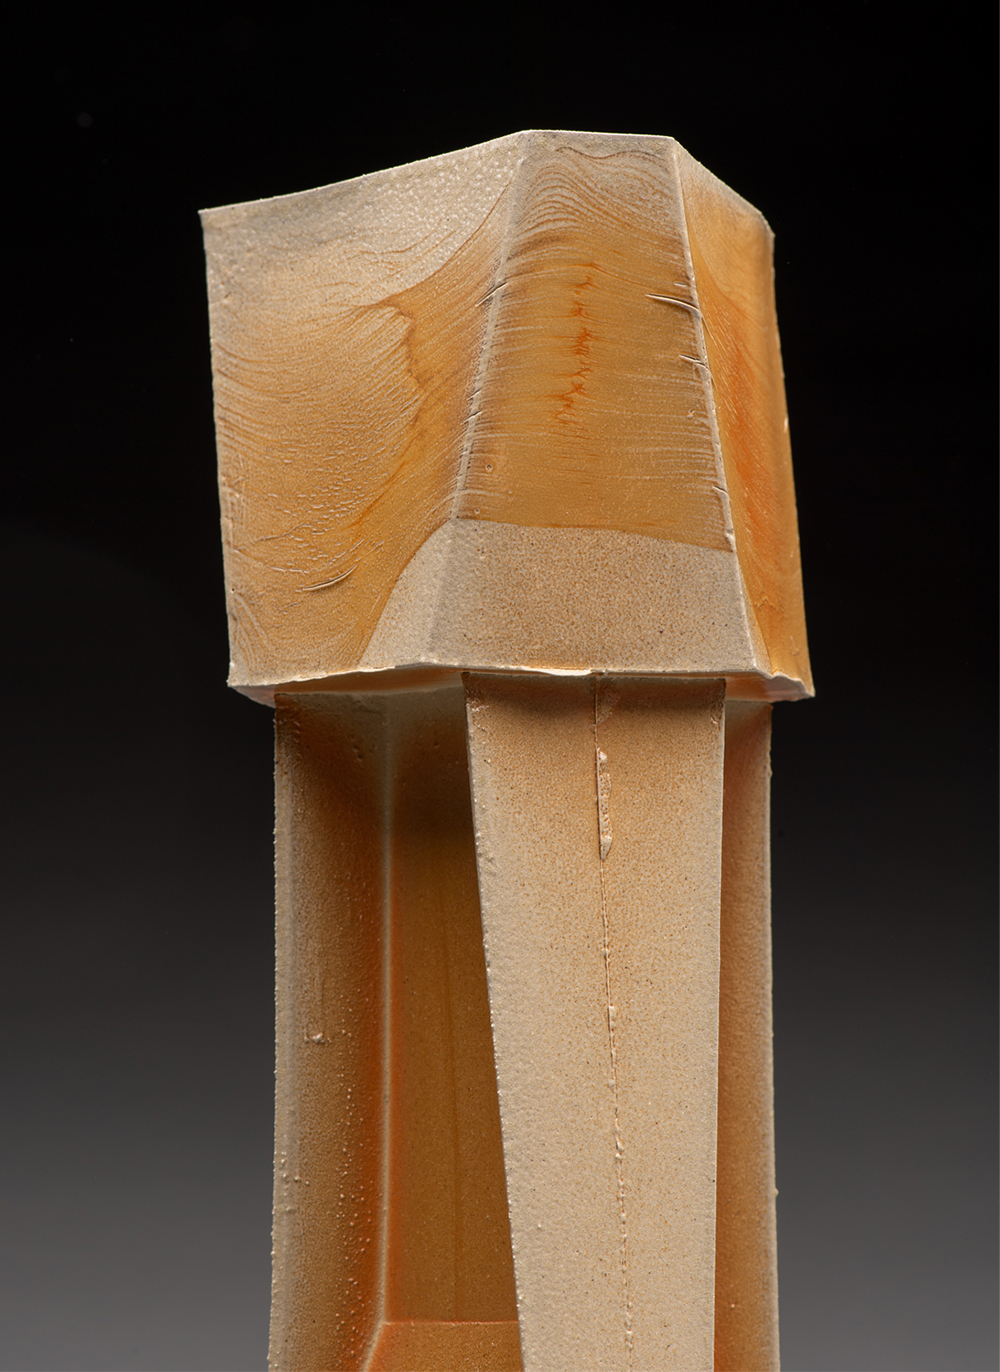 A detailed look at the top of a tall wooden sculpture inspired by industrial architecture.